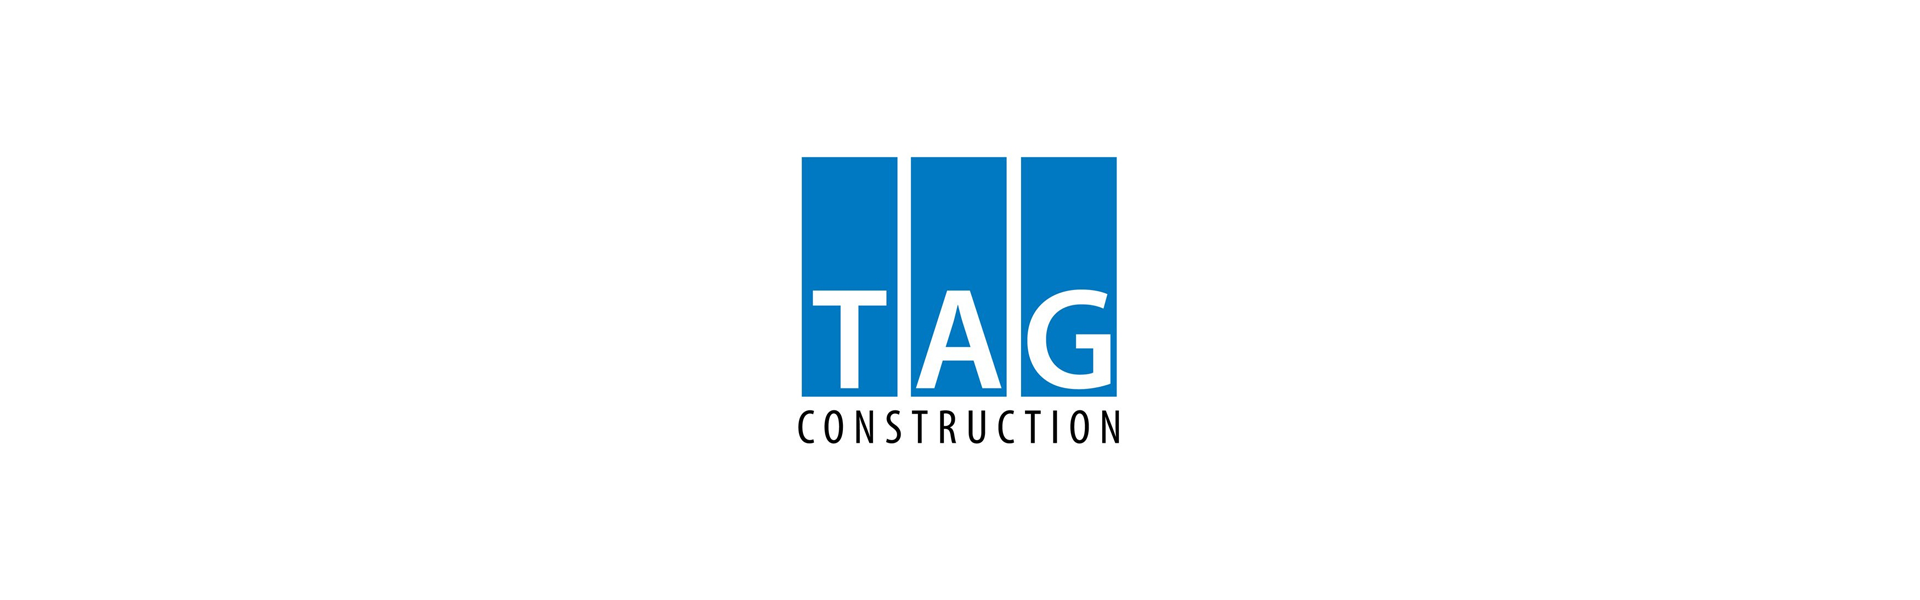 Tag Construction